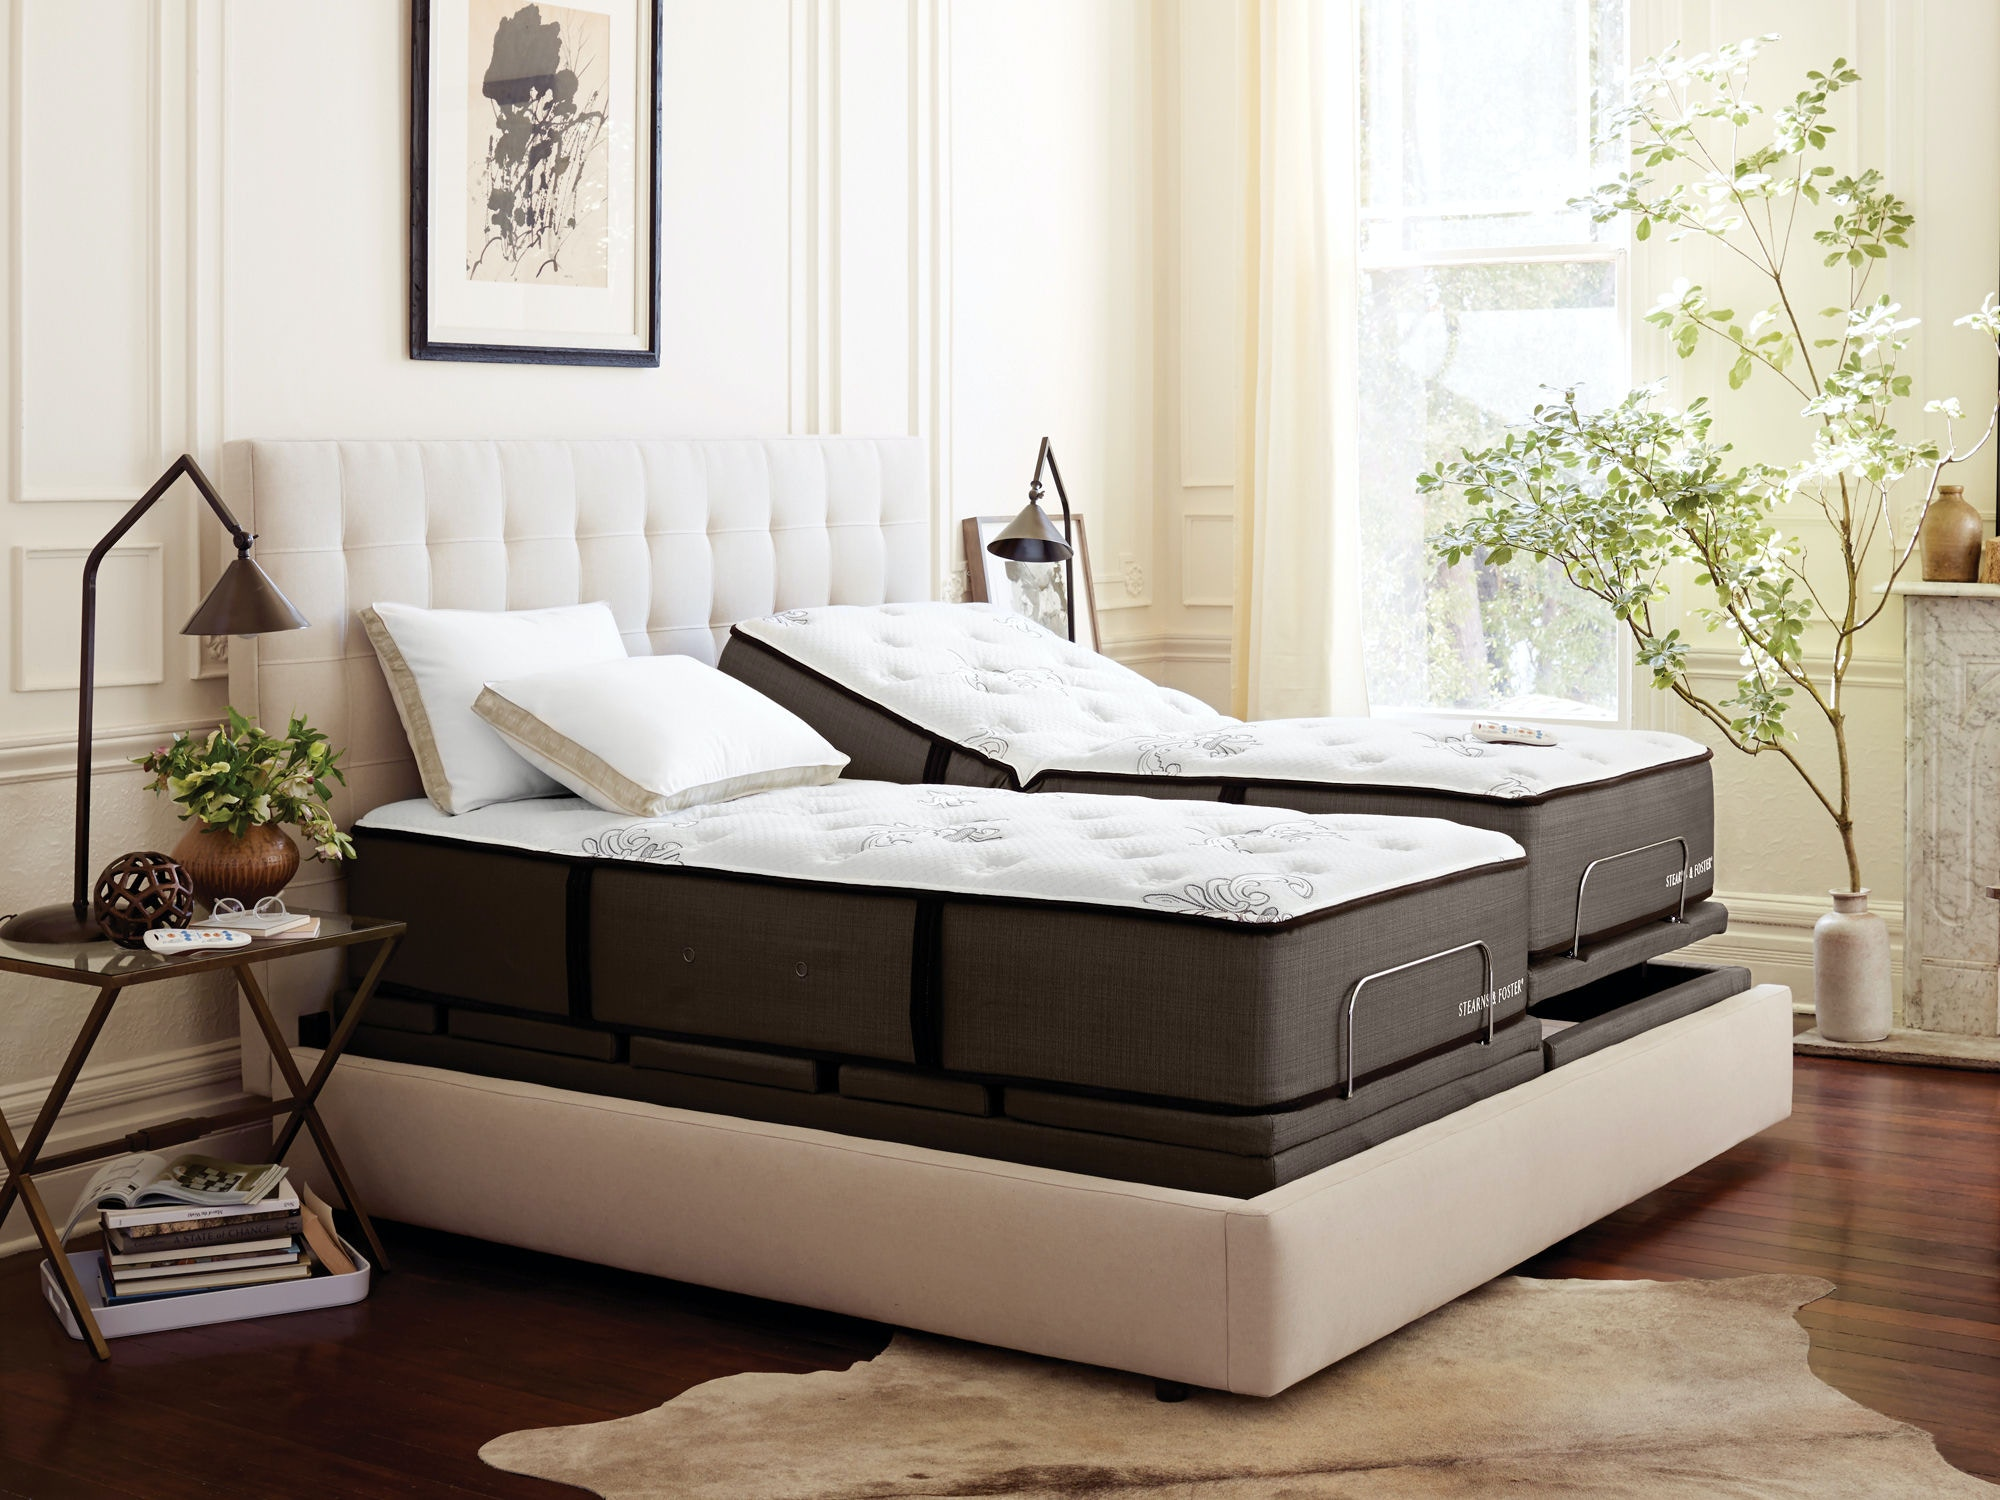 stearns and foster reflexion 7 adjustable base queen - Stearns And Foster Mattress